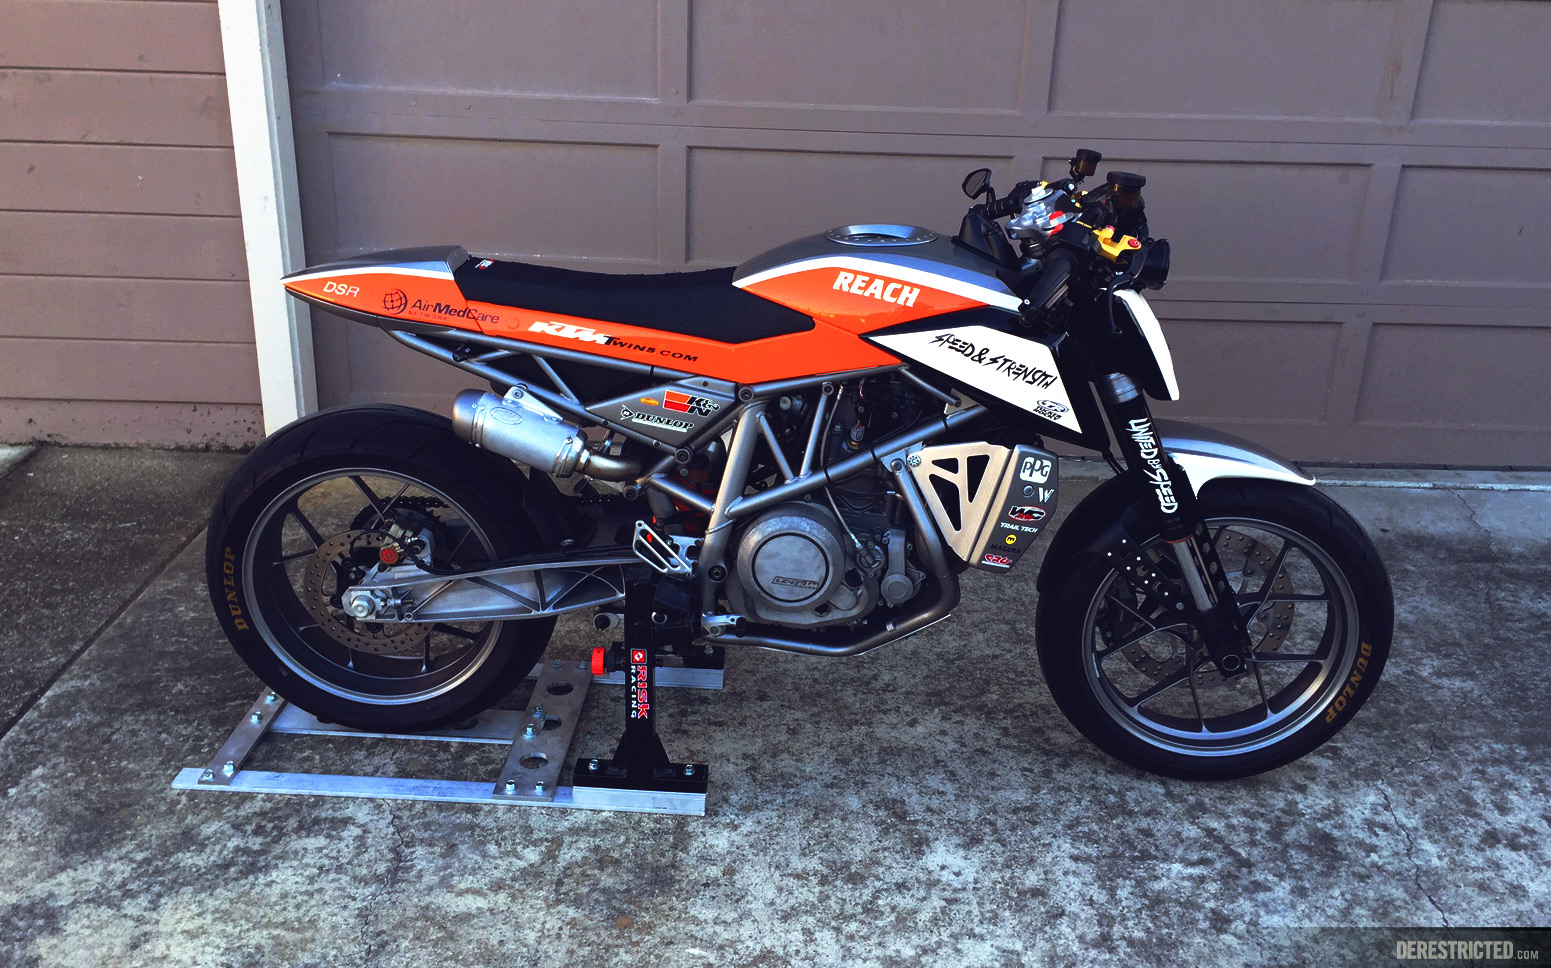 Dsr Ktm 690 Custom Derestricted